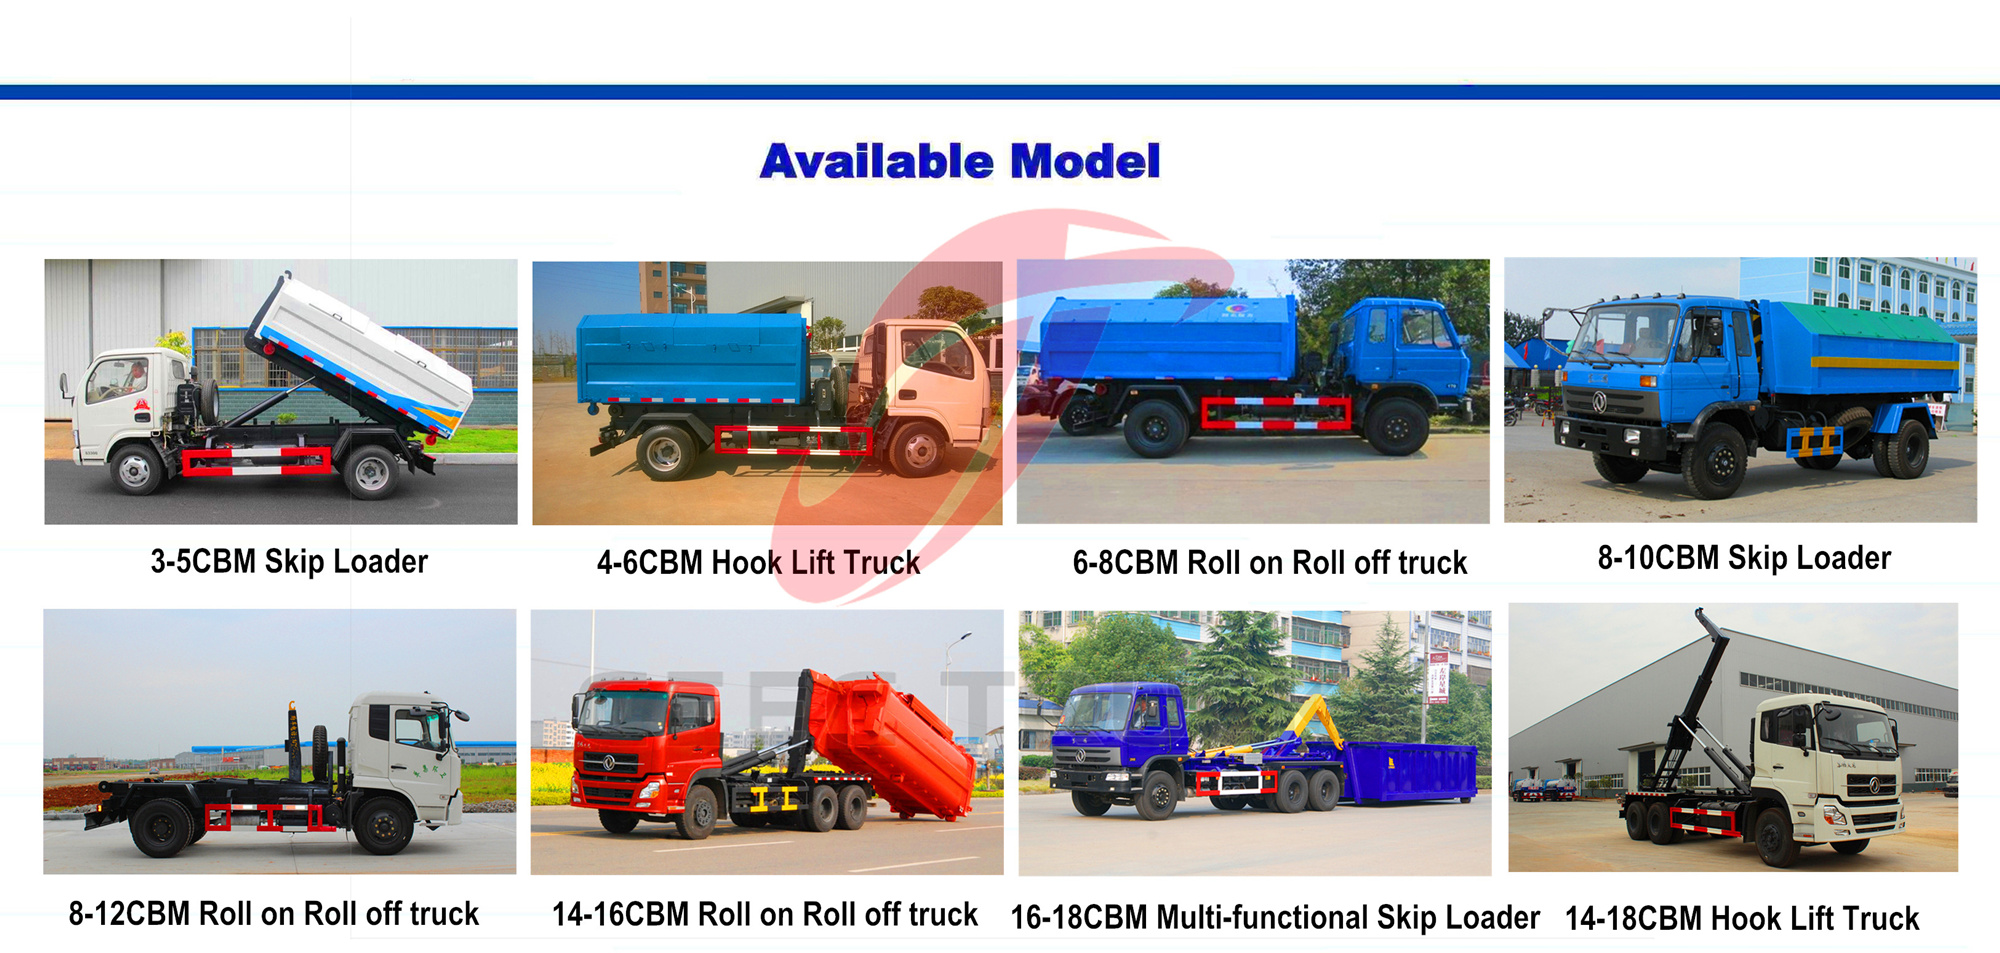 CEEC Roll on Roll off truck